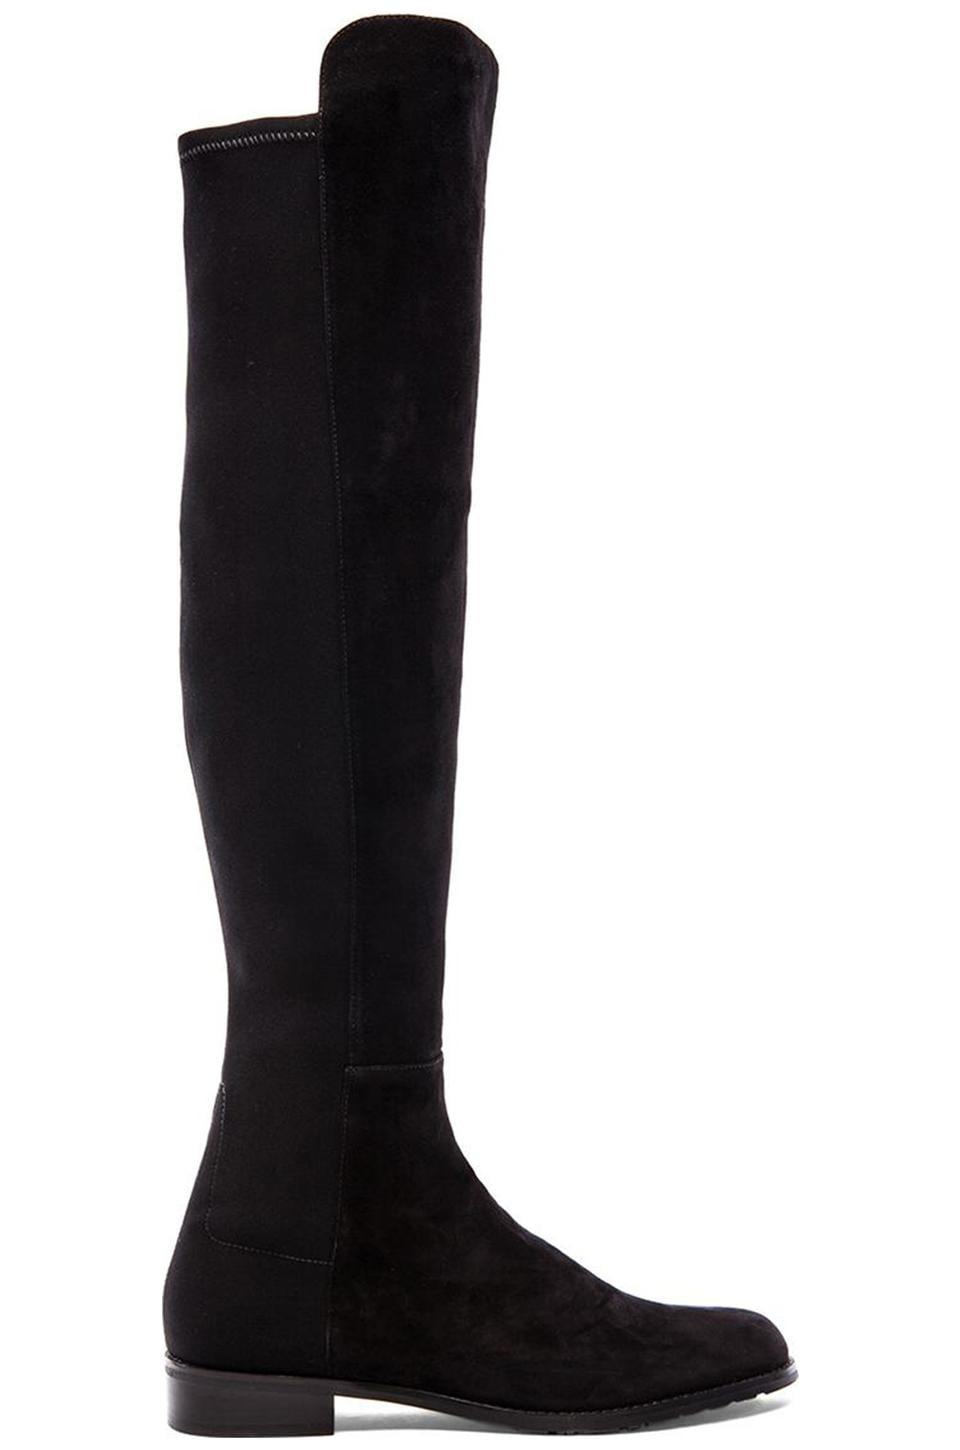 5050 Stretch Boot at REVOLVE